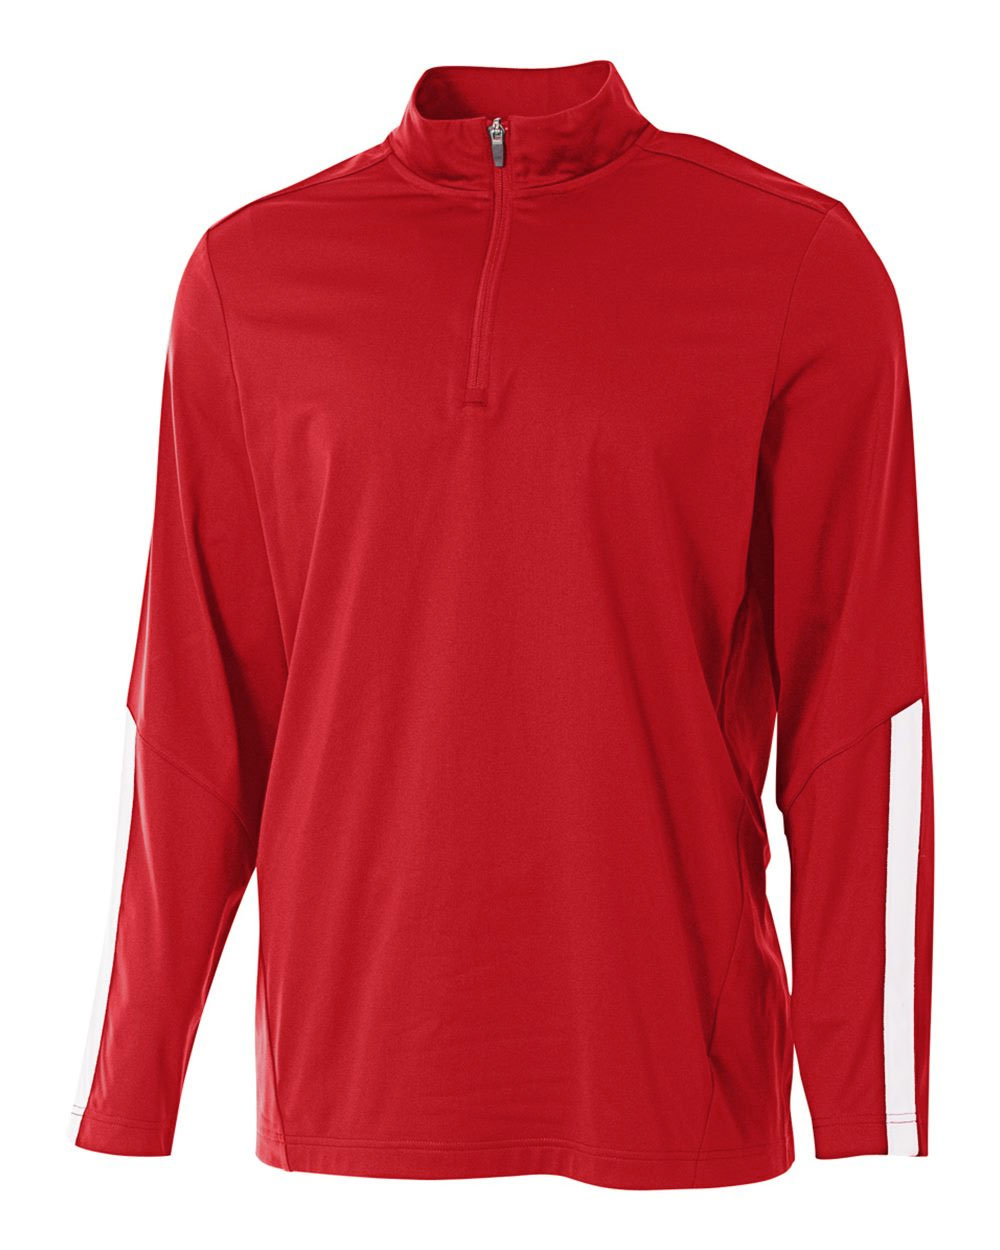 A4 Mens League 1/4 Zip Jacket